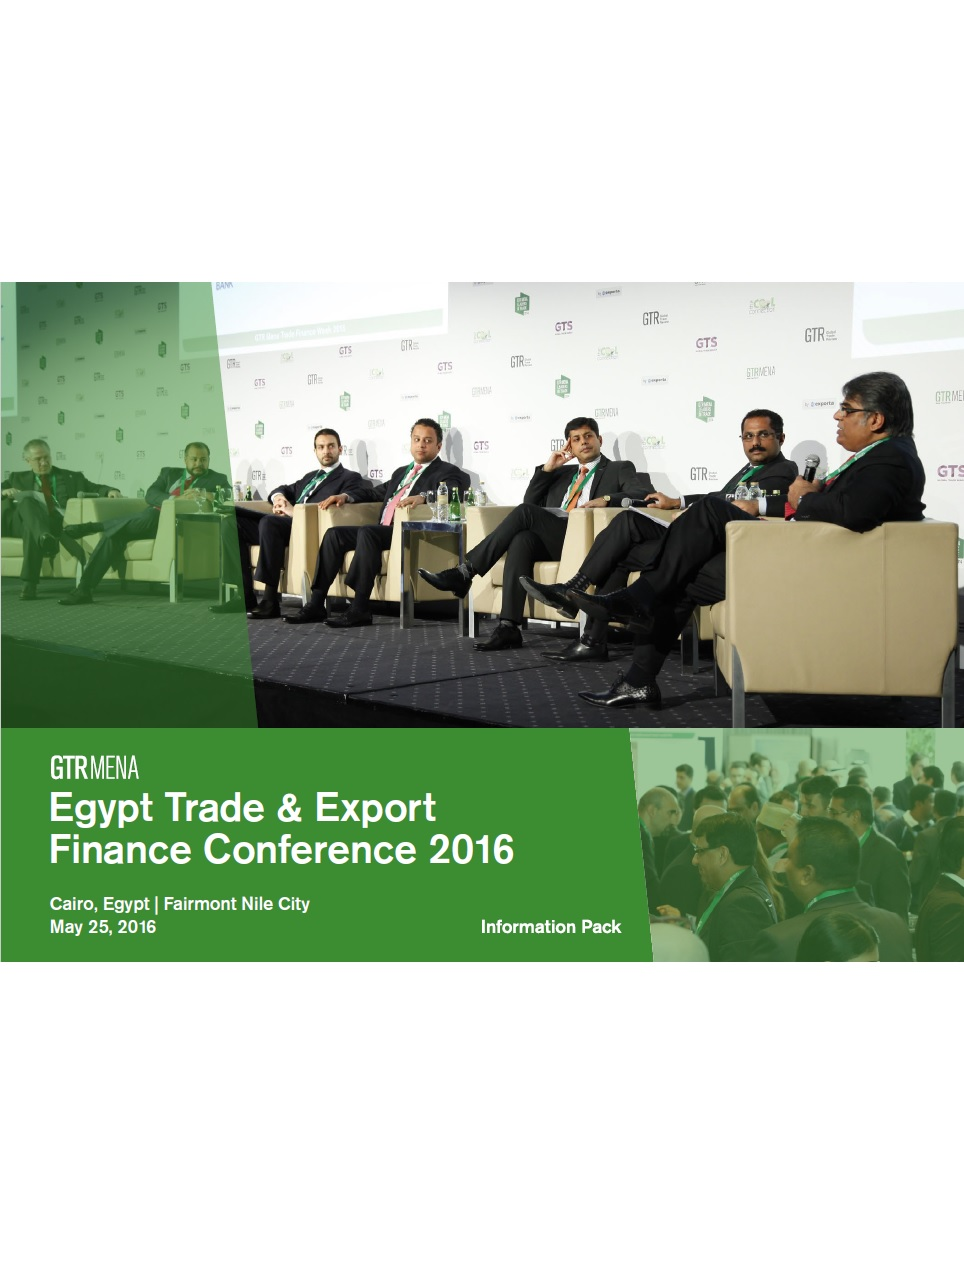 Egypt Trade & Export Finance Conference 2016 | Global Trade Review (GTR)